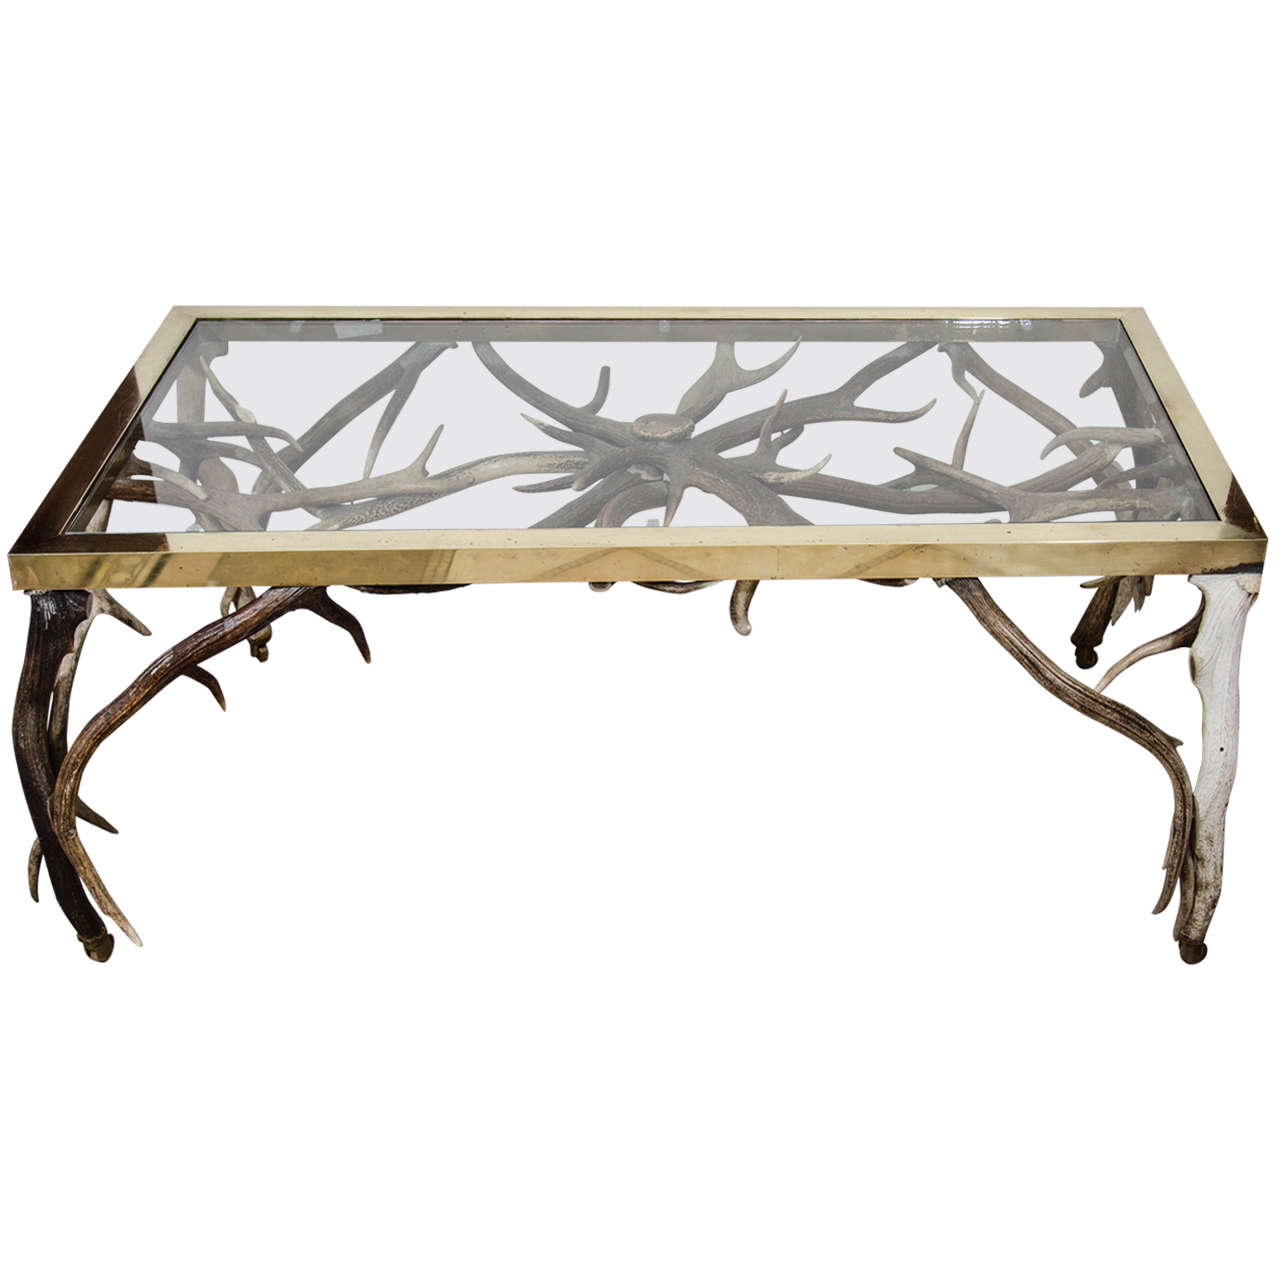 antler coffee table at 1stdibs With antler coffee table